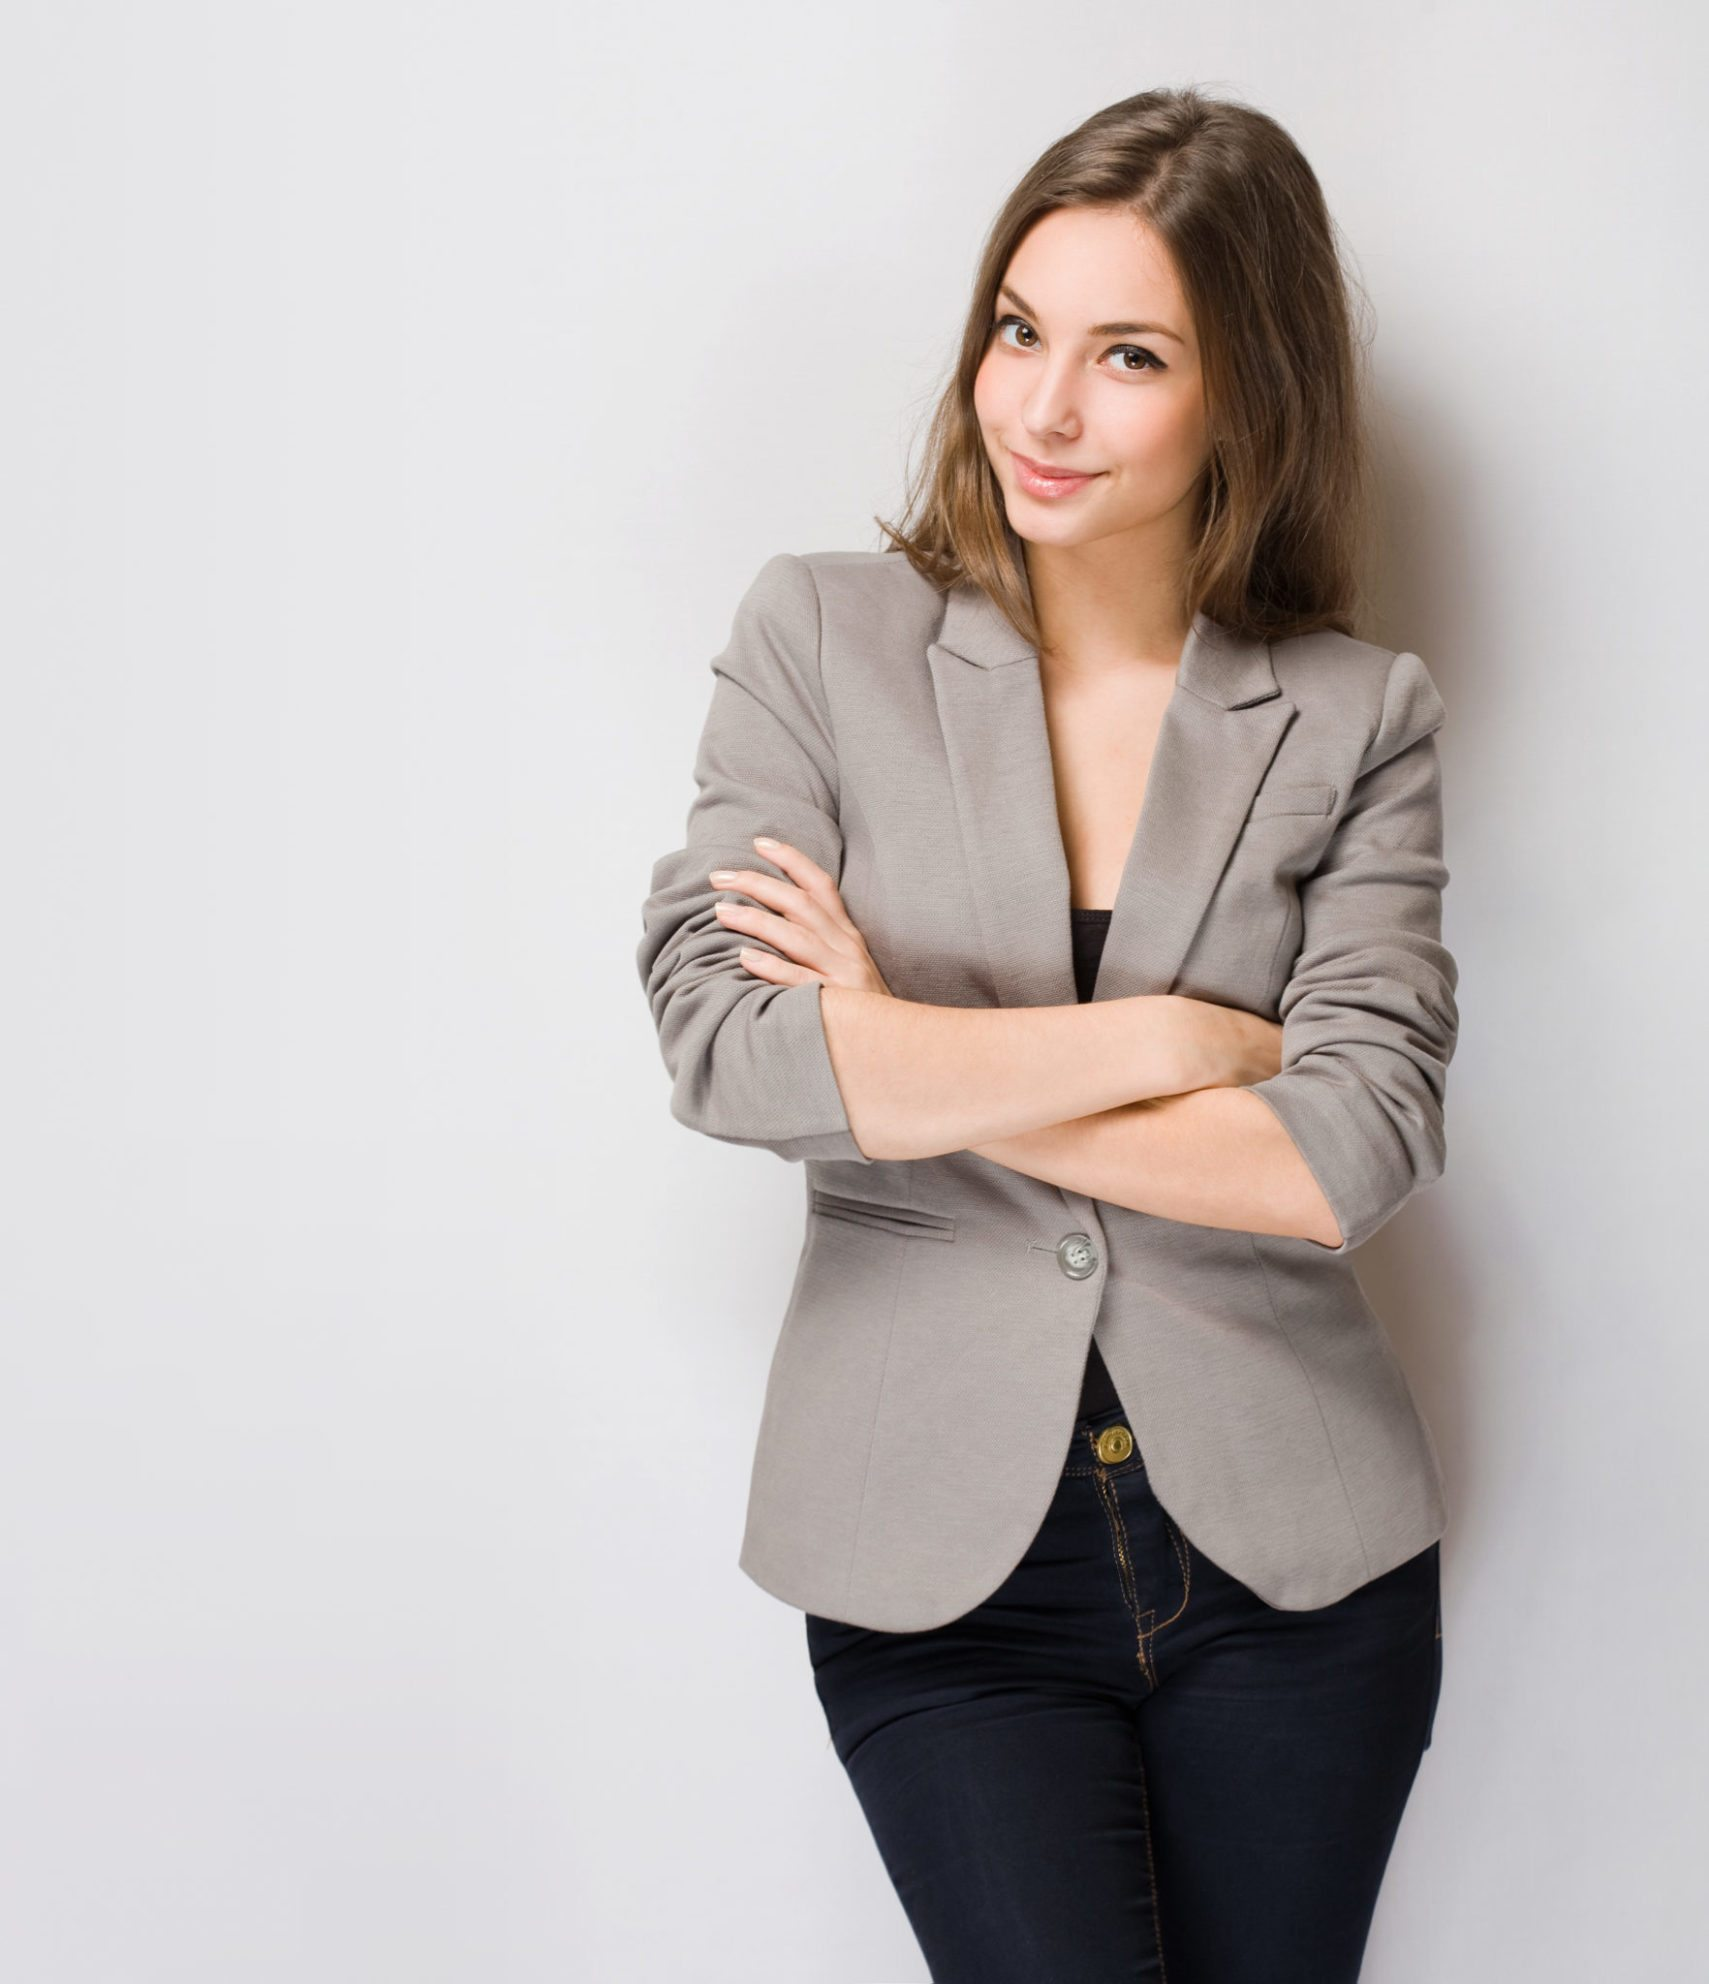 Real estate agents' body language and speech can cost them business